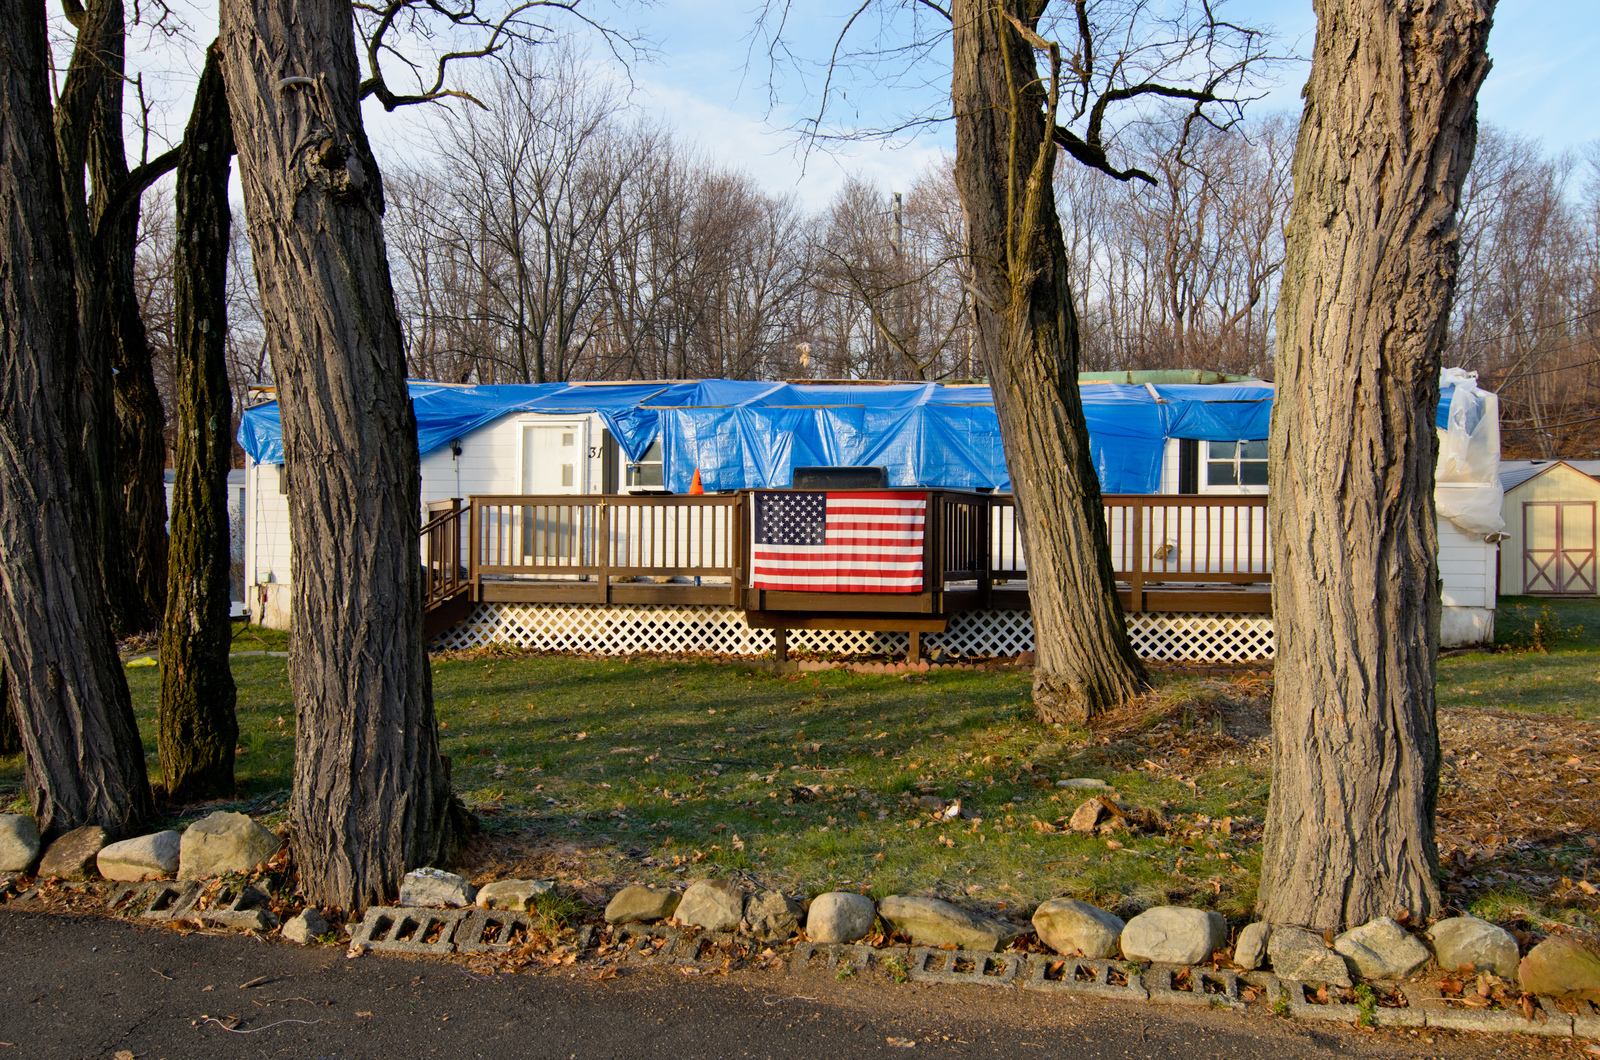 Stony Point, N.Y., Dec. 15, 2012 -- Ba Mar Basin manufactured homes park on the Hudson River in Stony Point , New York. Waterfront homes on Stony Point Bay were damaged by Hurricane Sandy. FEMA is providing assistance and support to residents of Rockland County, NY. Andre R. Aragon/FEMA